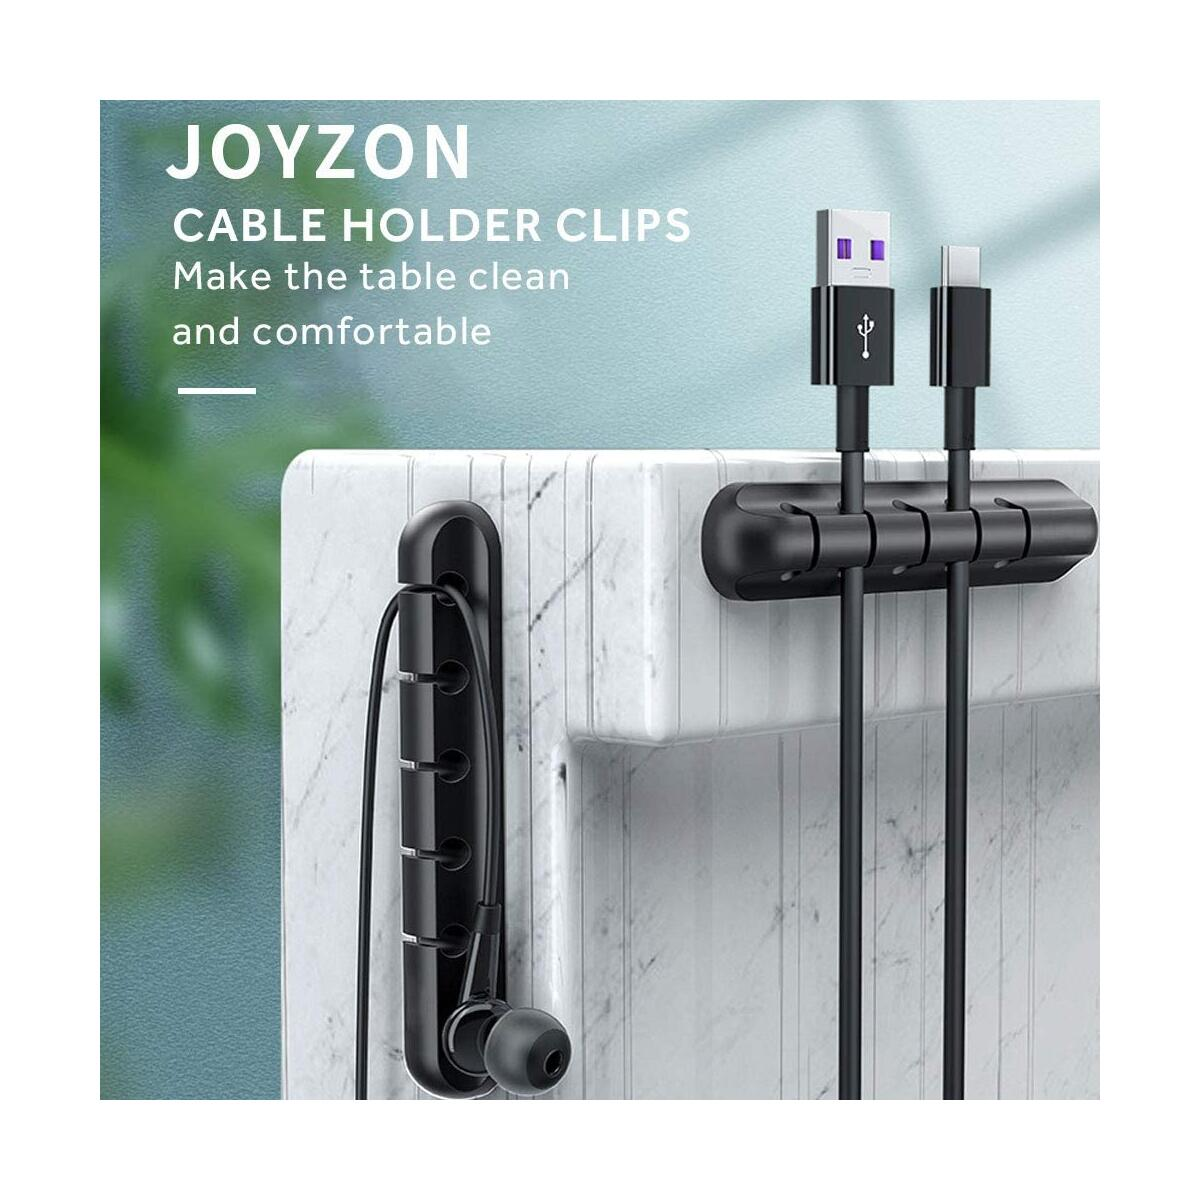 JOYZON Cable Holder Clips, 5-Pack Cable Management Cord Organizer Clips Silicone Self Adhesive Wire Management for Desktop USB Charging Cable Power Cord PC Home, Office, Car (7, 5, 3, 3 and 3Slots)